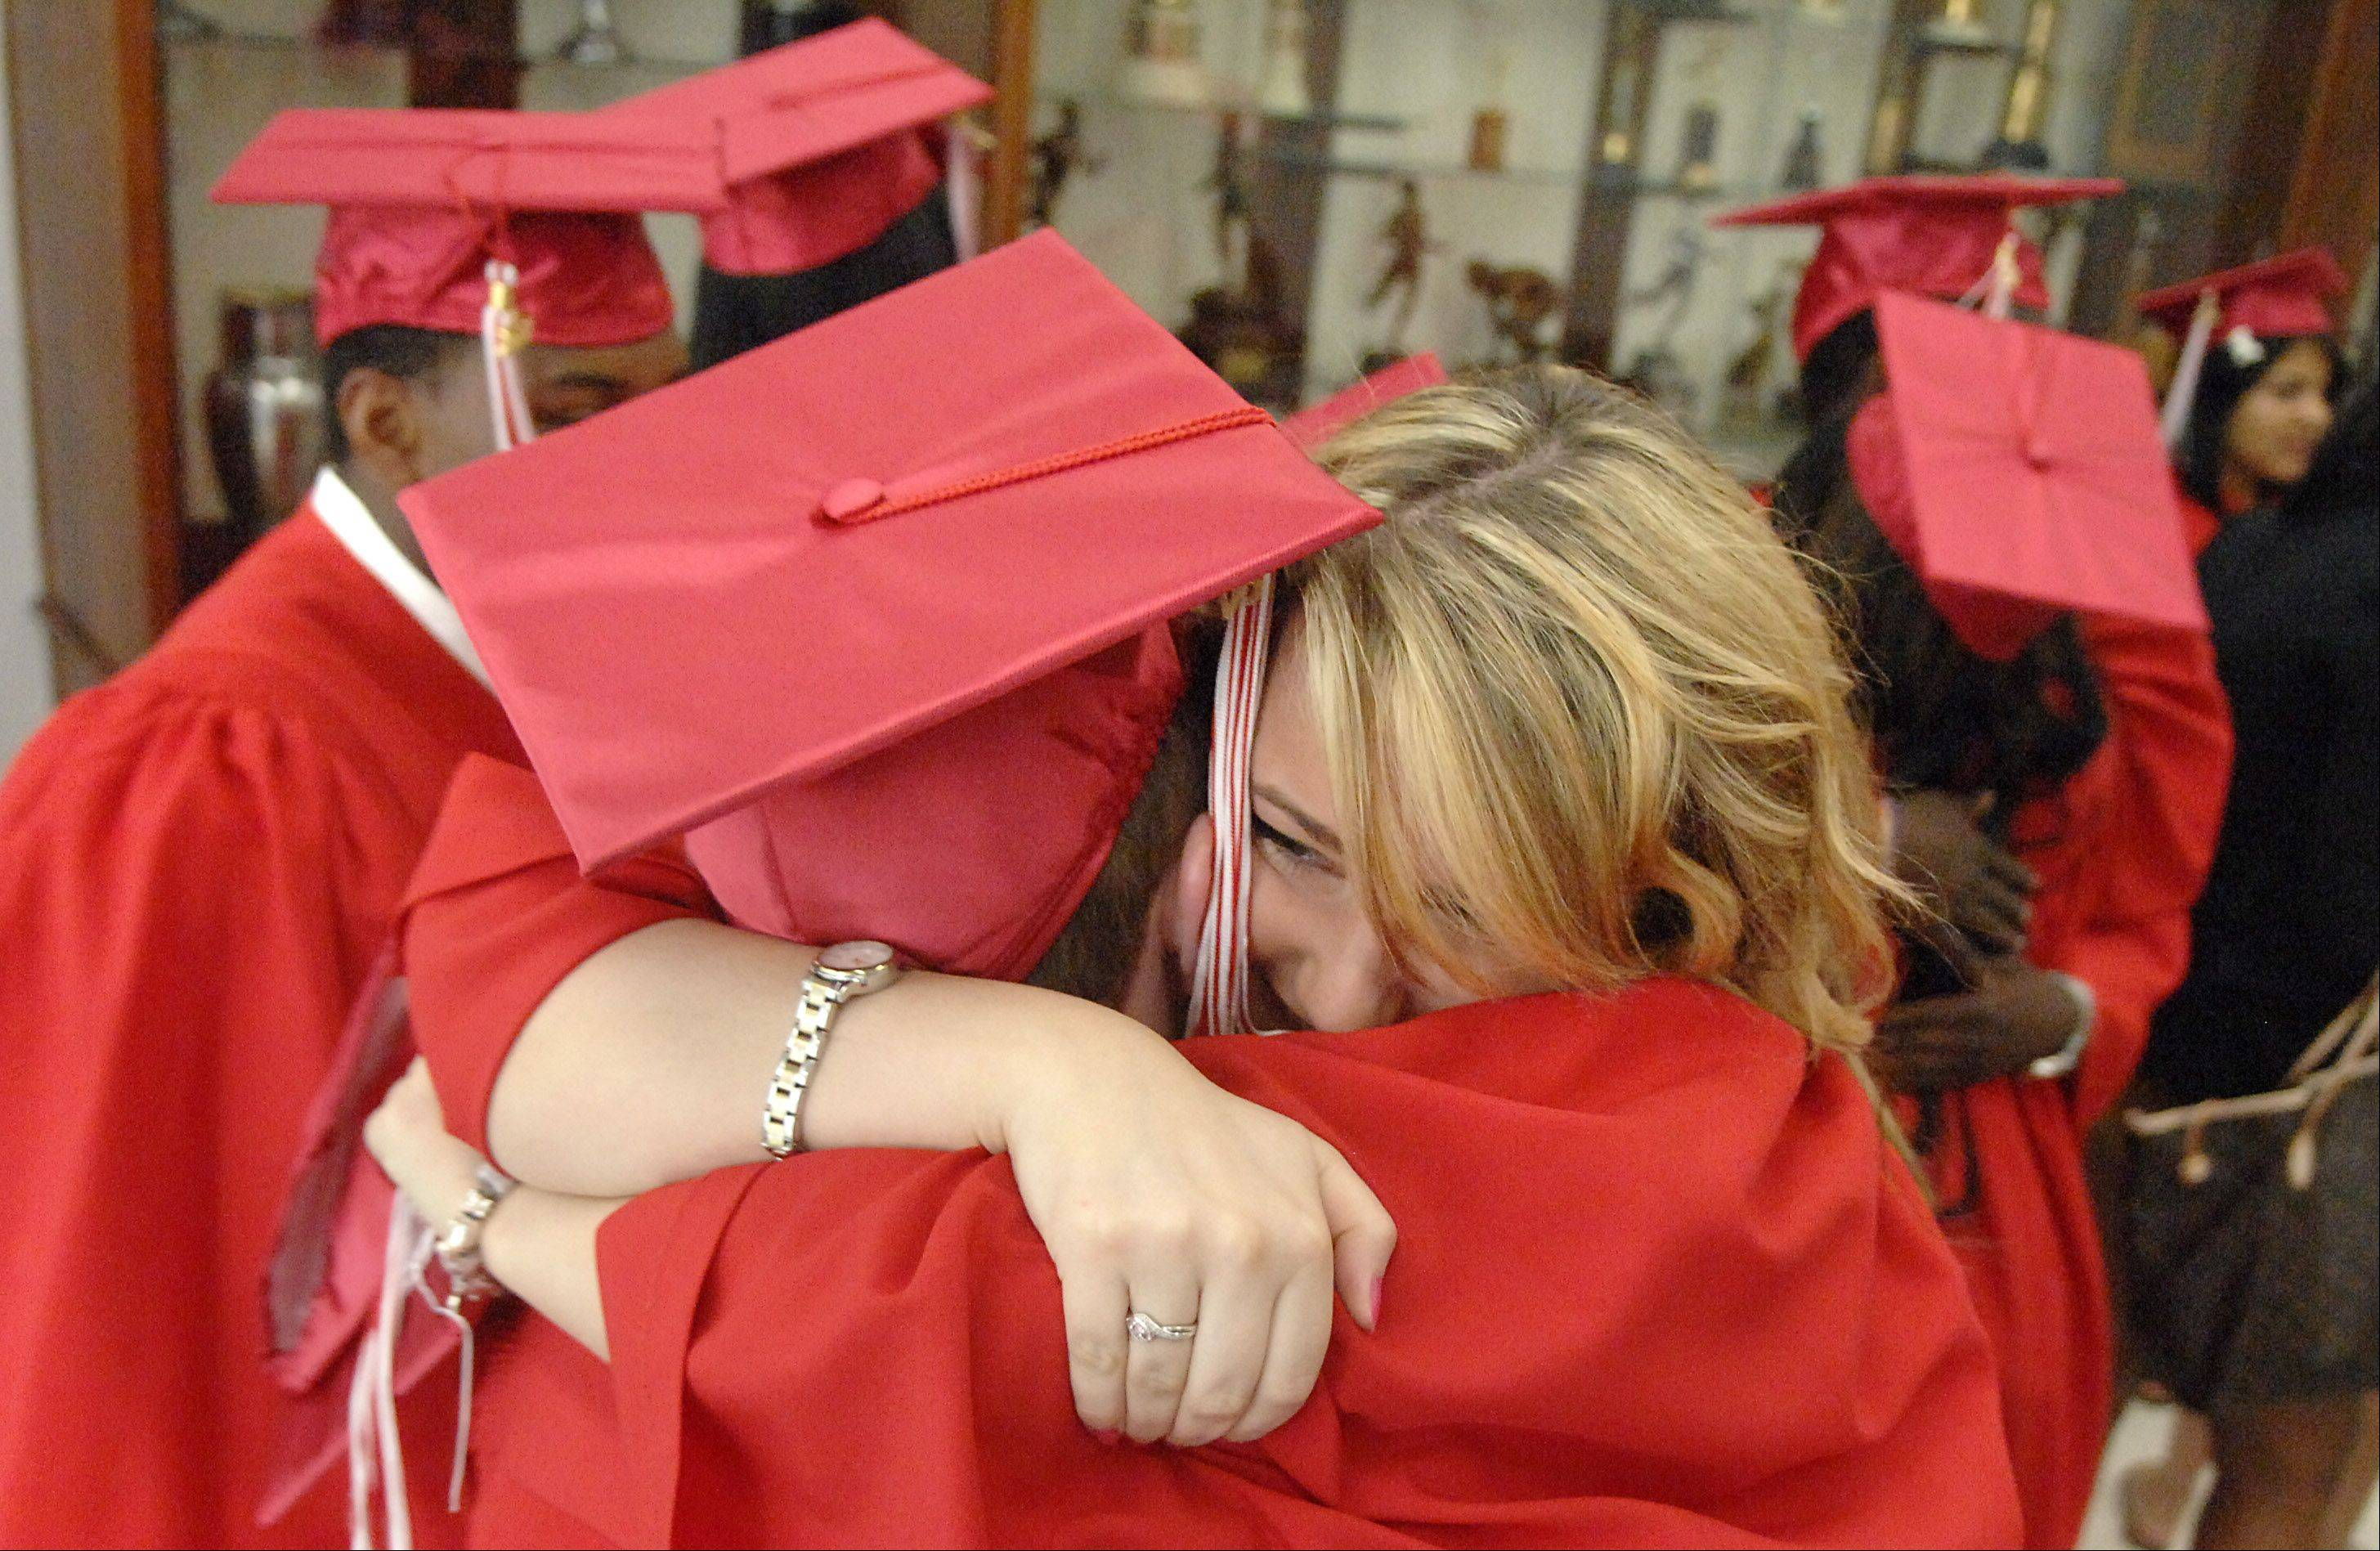 Hannah Avery hugs Zachary Rice before they and fellow classmates of Mooseheart High School line up for their graduation in Batavia on Saturday, June 2. The class of 2012 had 16 graduates. Avery is from Poole, England and Rice is from Inverness, FL.